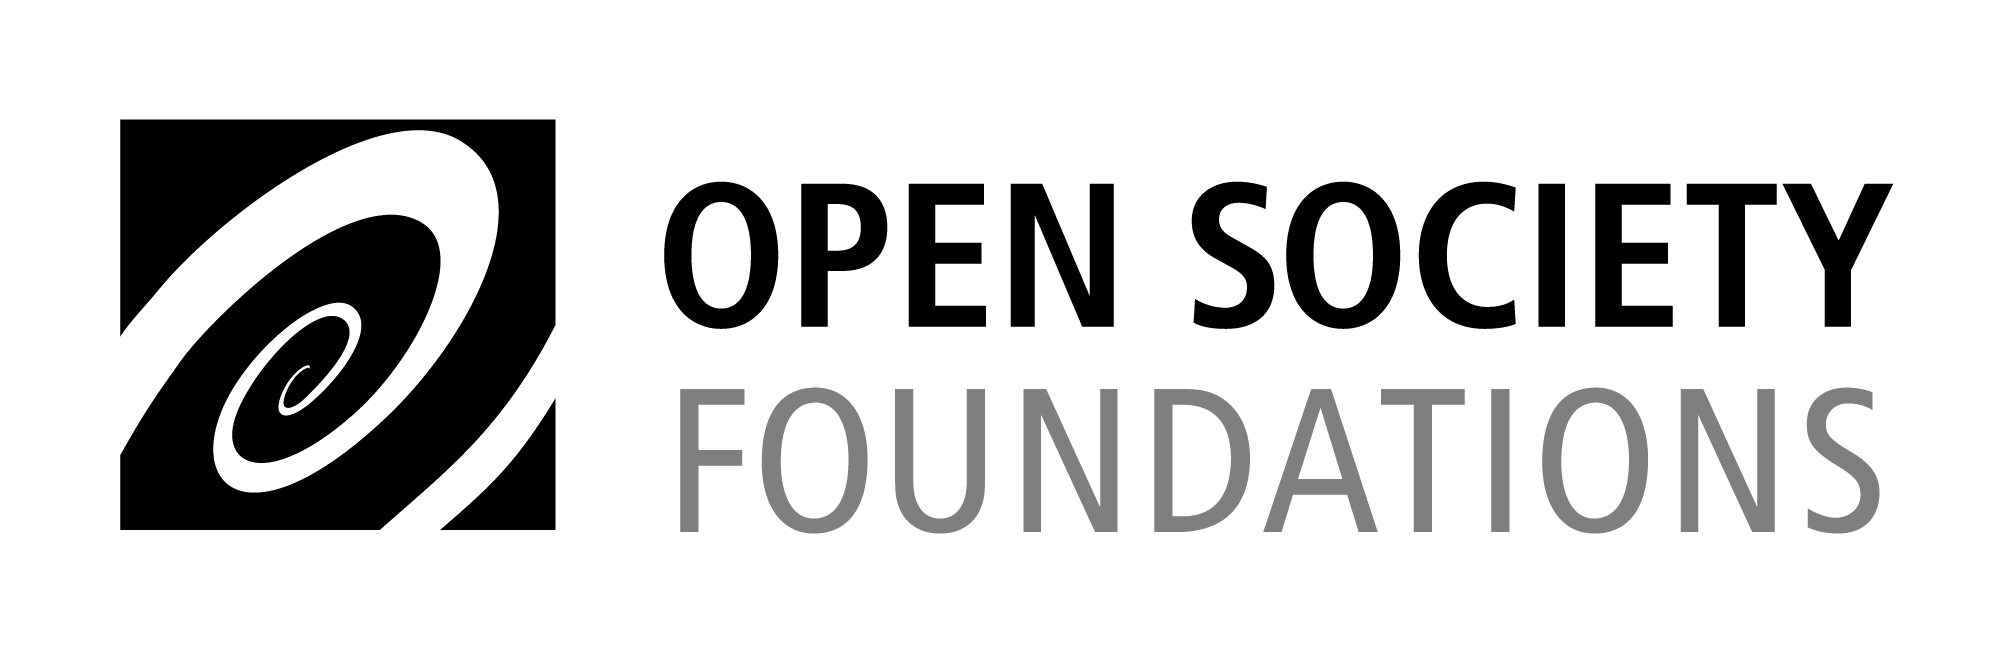 http://www.szarakamienica.pl/public/picture/prawo/open_society_foundations-logo-2016_01_08-2000x650.png